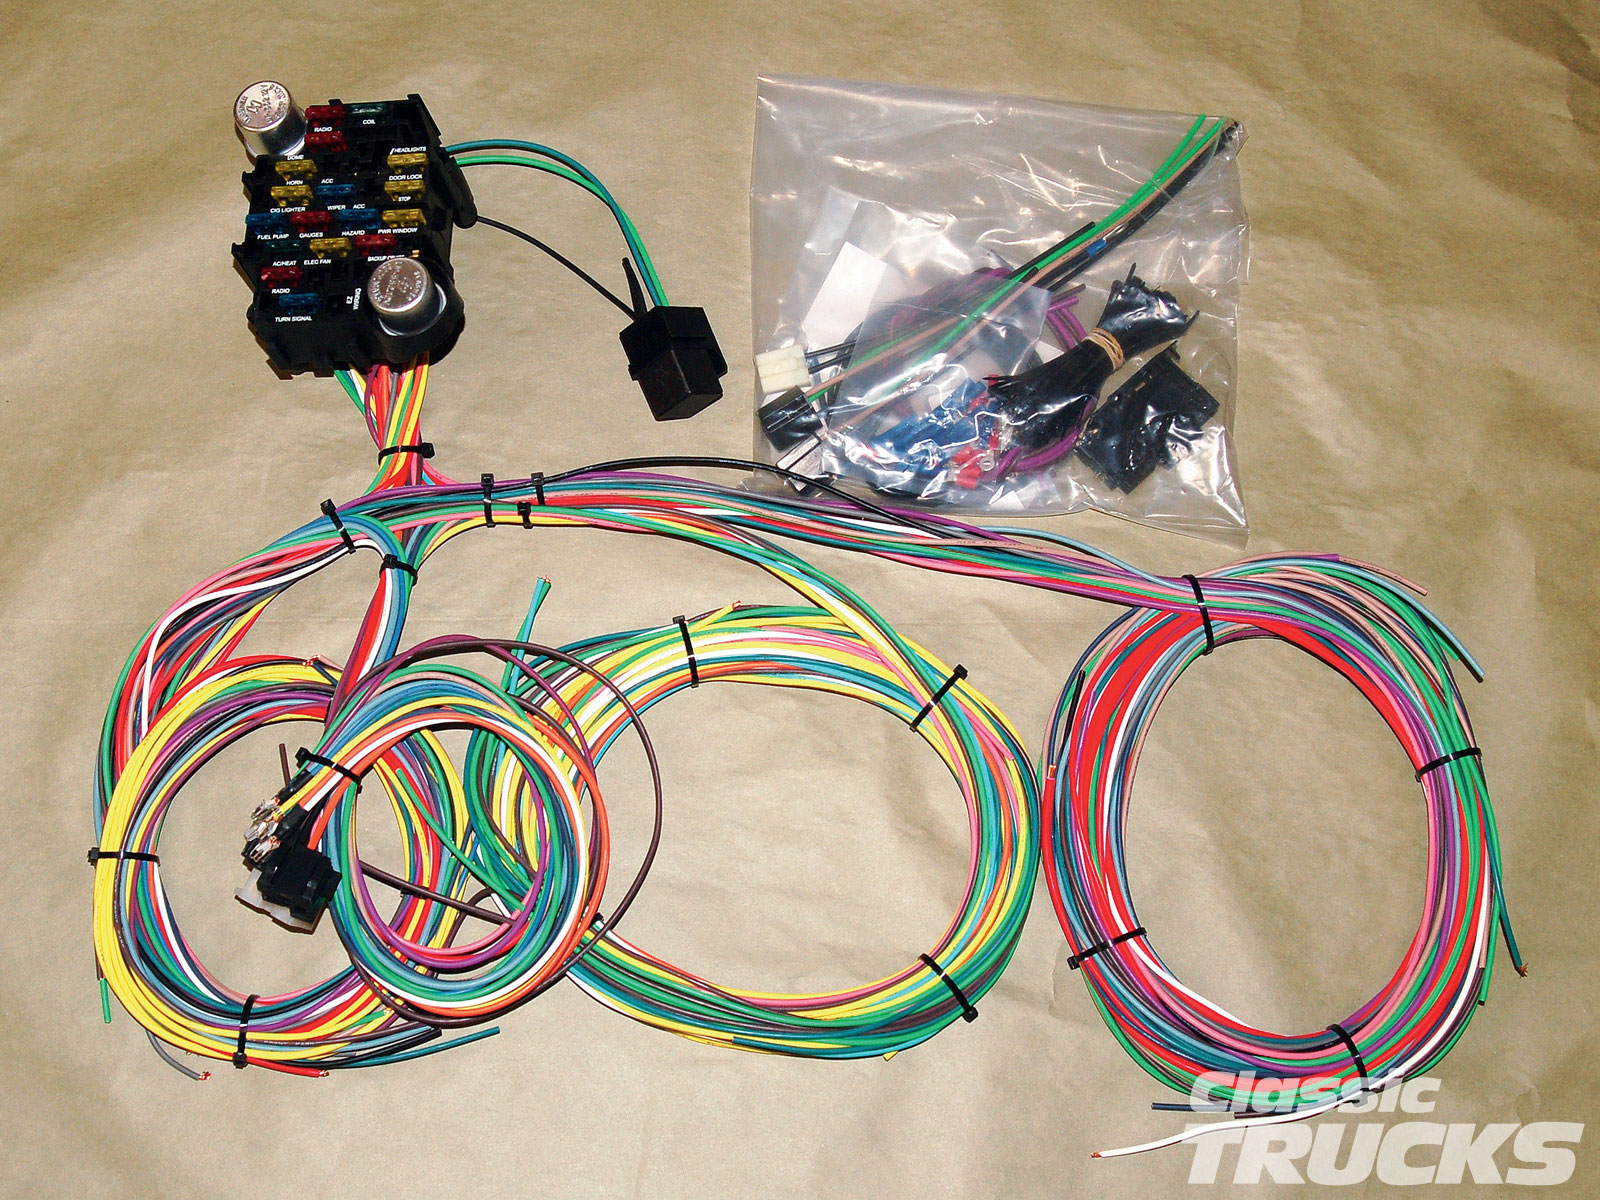 1010clt 02 o aftermarket wiring harness install kit?resize=640%2C480 how much does a wire harness cost to replace hobbiesxstyle how much does it cost to replace a wiring harness at suagrazia.org